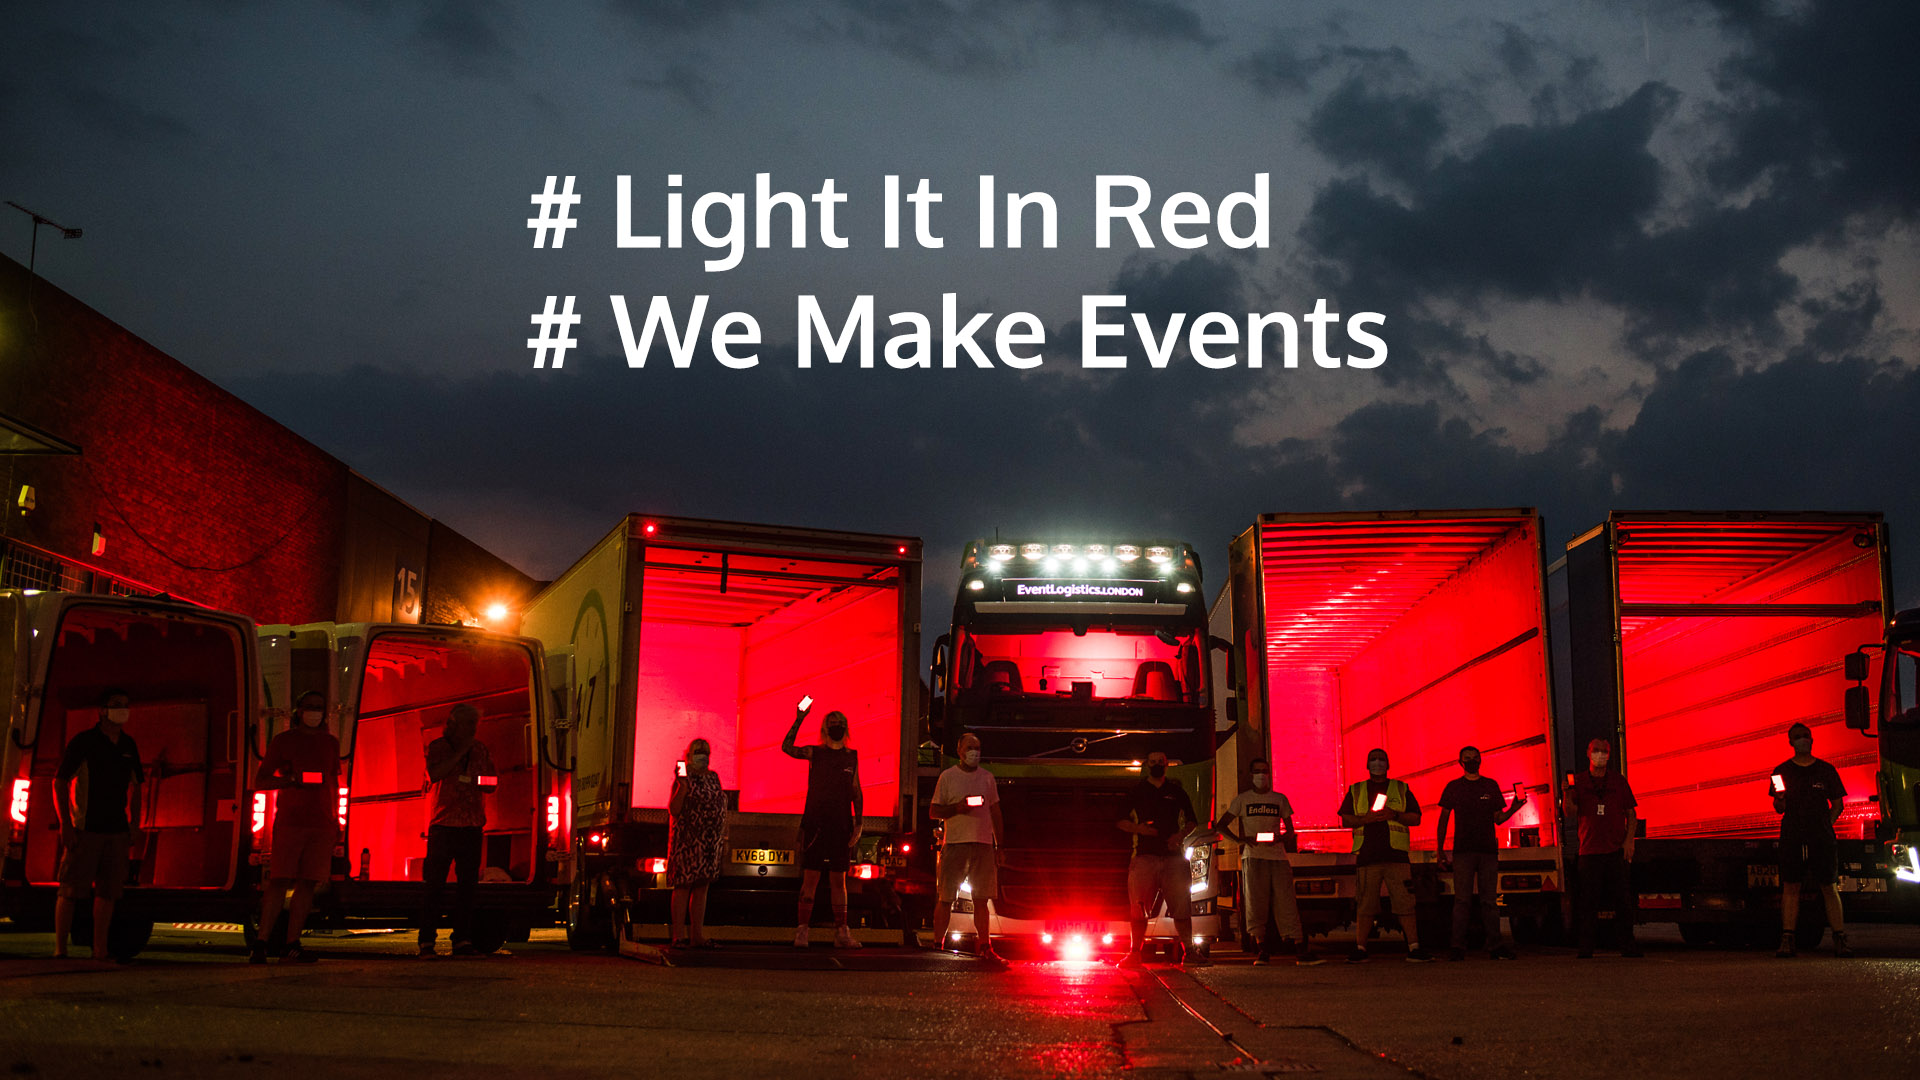 AB247 team in empty trucks for#lightitinred #wemakeevents